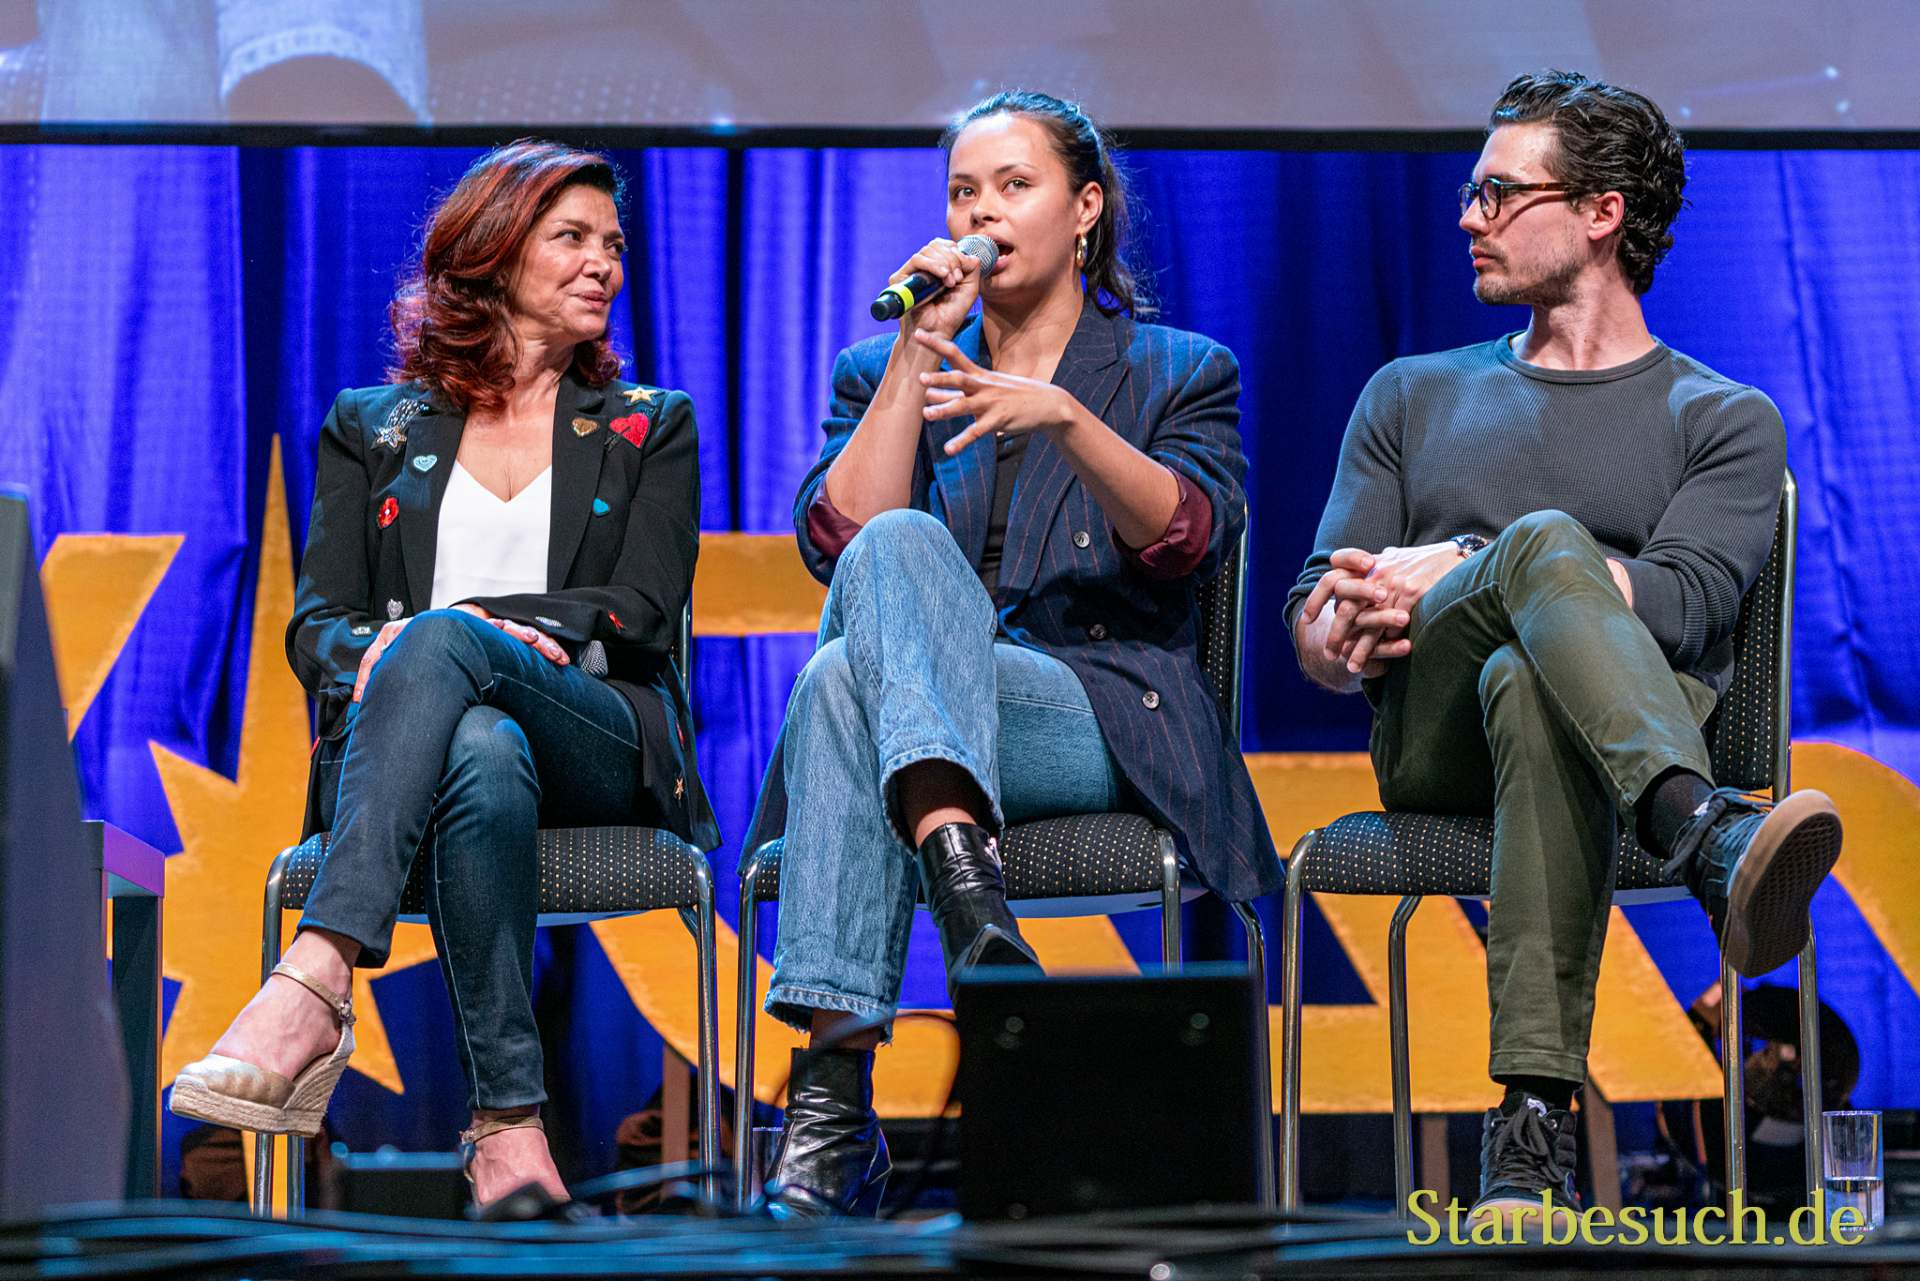 Bonn, Germany - June 8 2019: Shohreh Aghdashloo, Frankie Adams and Steven Strait at FedCon 28, a four day sci-fi convention. FedCon 28 took place Jun 7-10 2019.